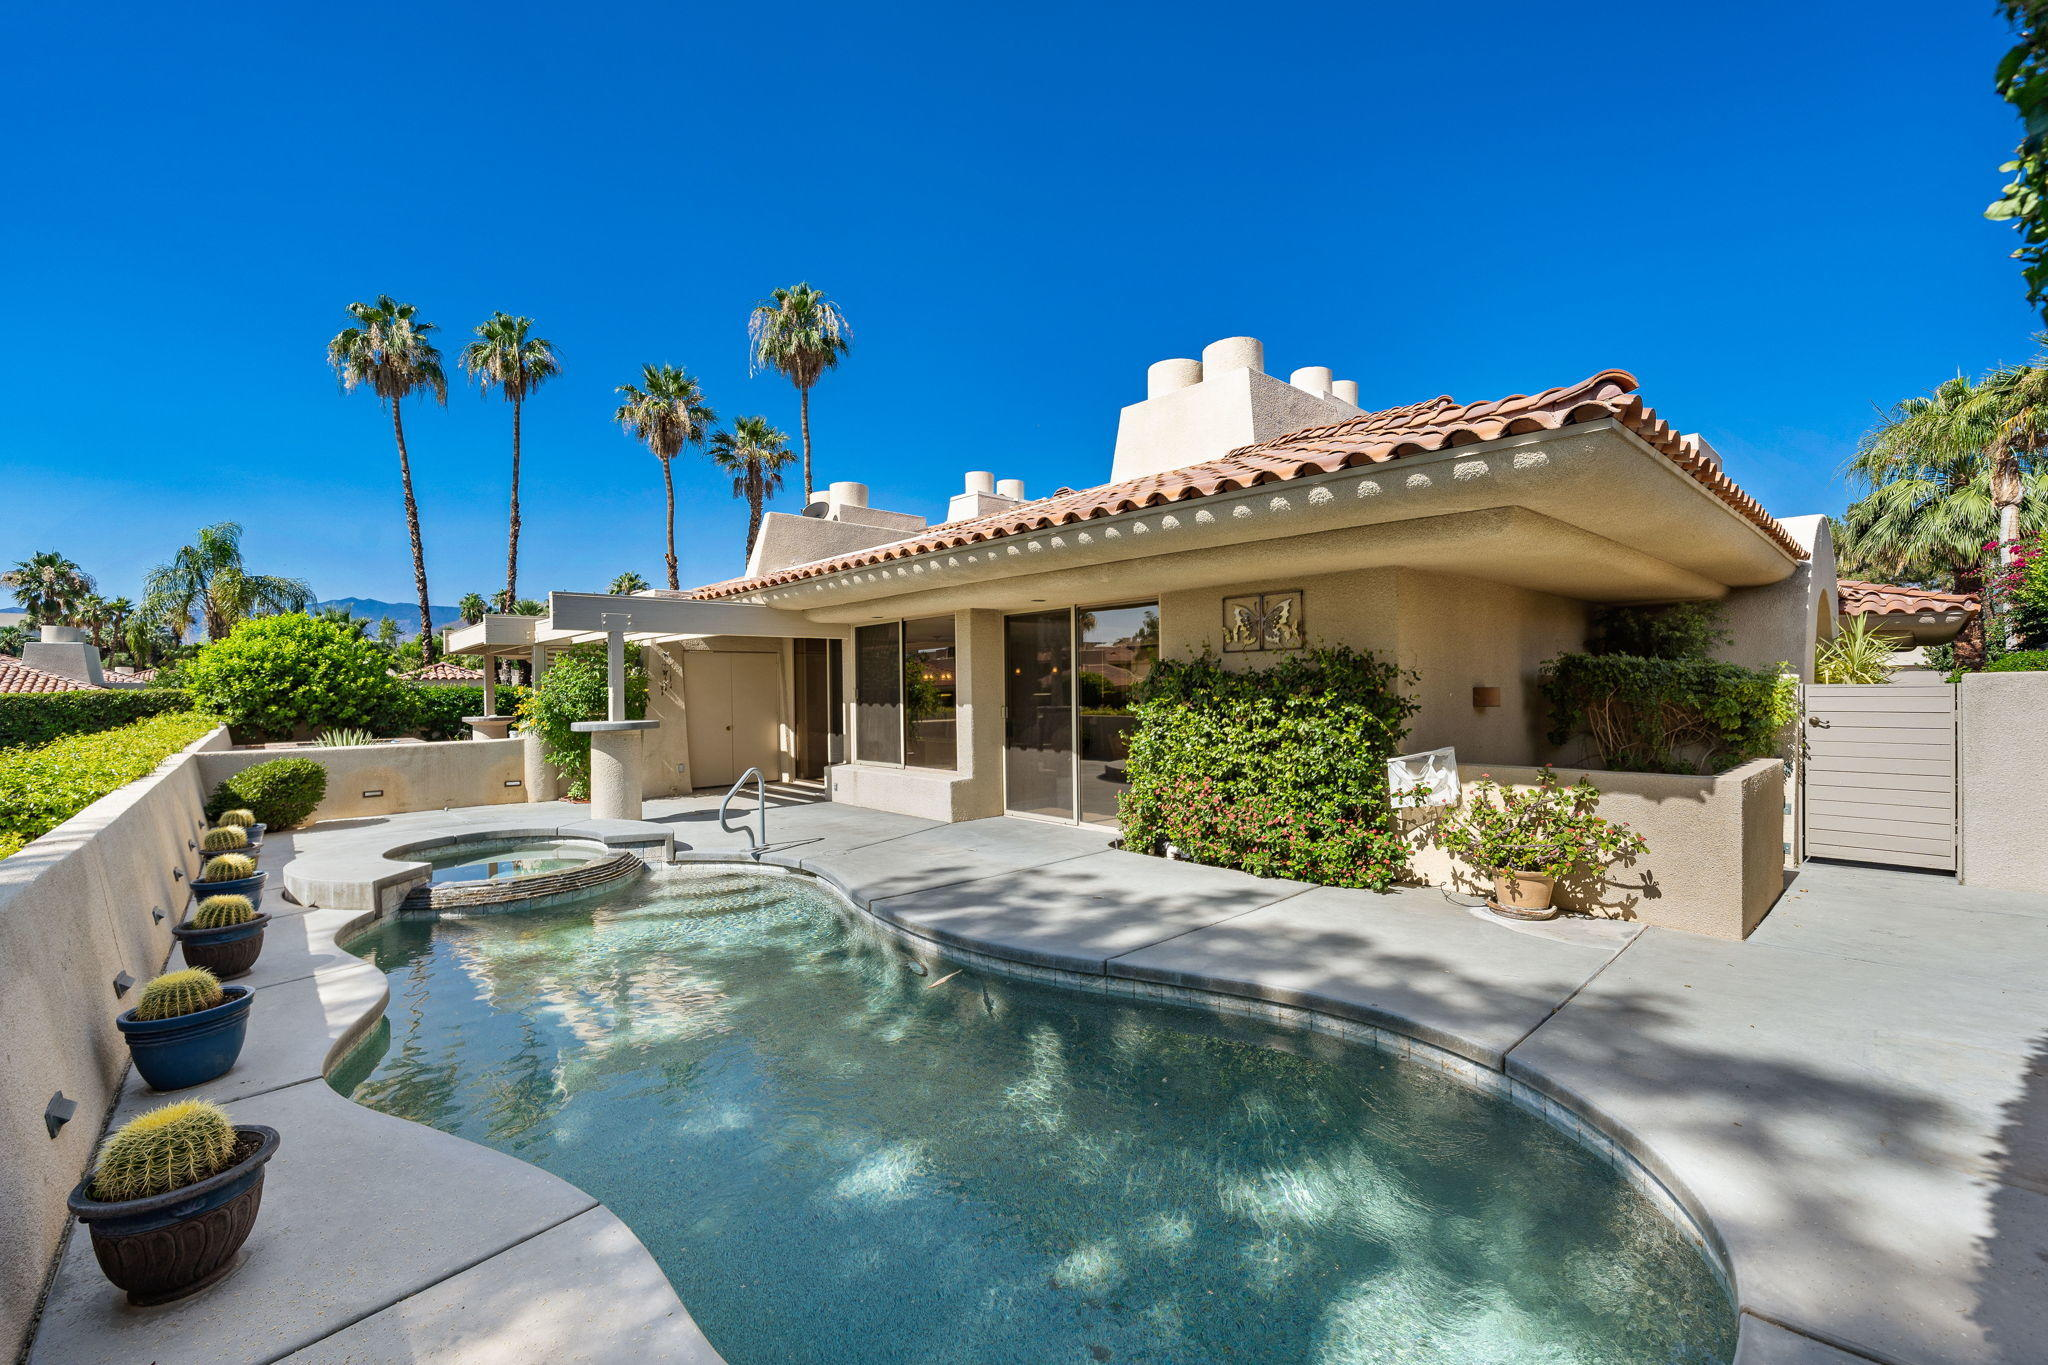 Just reduced and priced to sell in the heart of Rancho Mirage!  This spacious 3bd/4bath home, features high vaulted ceilings, Travertine floors, updated kitchen and bathrooms. At 3,246 sq ft this is one of the largest  plans at RMCC, and features an elevator! The living room offers beautiful views, fireplace, bar for entertaining, and dining area. Sparkling Pebble tech pool and spa, overlooks a peaceful greenbelt and lake setting. Gourmet kitchen with custom cabinetry, granite countertops, island and high end Dacor oven and range. There are two large primary bedrooms, and a third guest bedroom that is currently used as a den. One primary suite features a fireplace, balcony and oversized walk in closet. Located close to  Eisenhower Hospital, dining, shopping and entertainment! Palm Springs and El Paseo are mere minutes away.